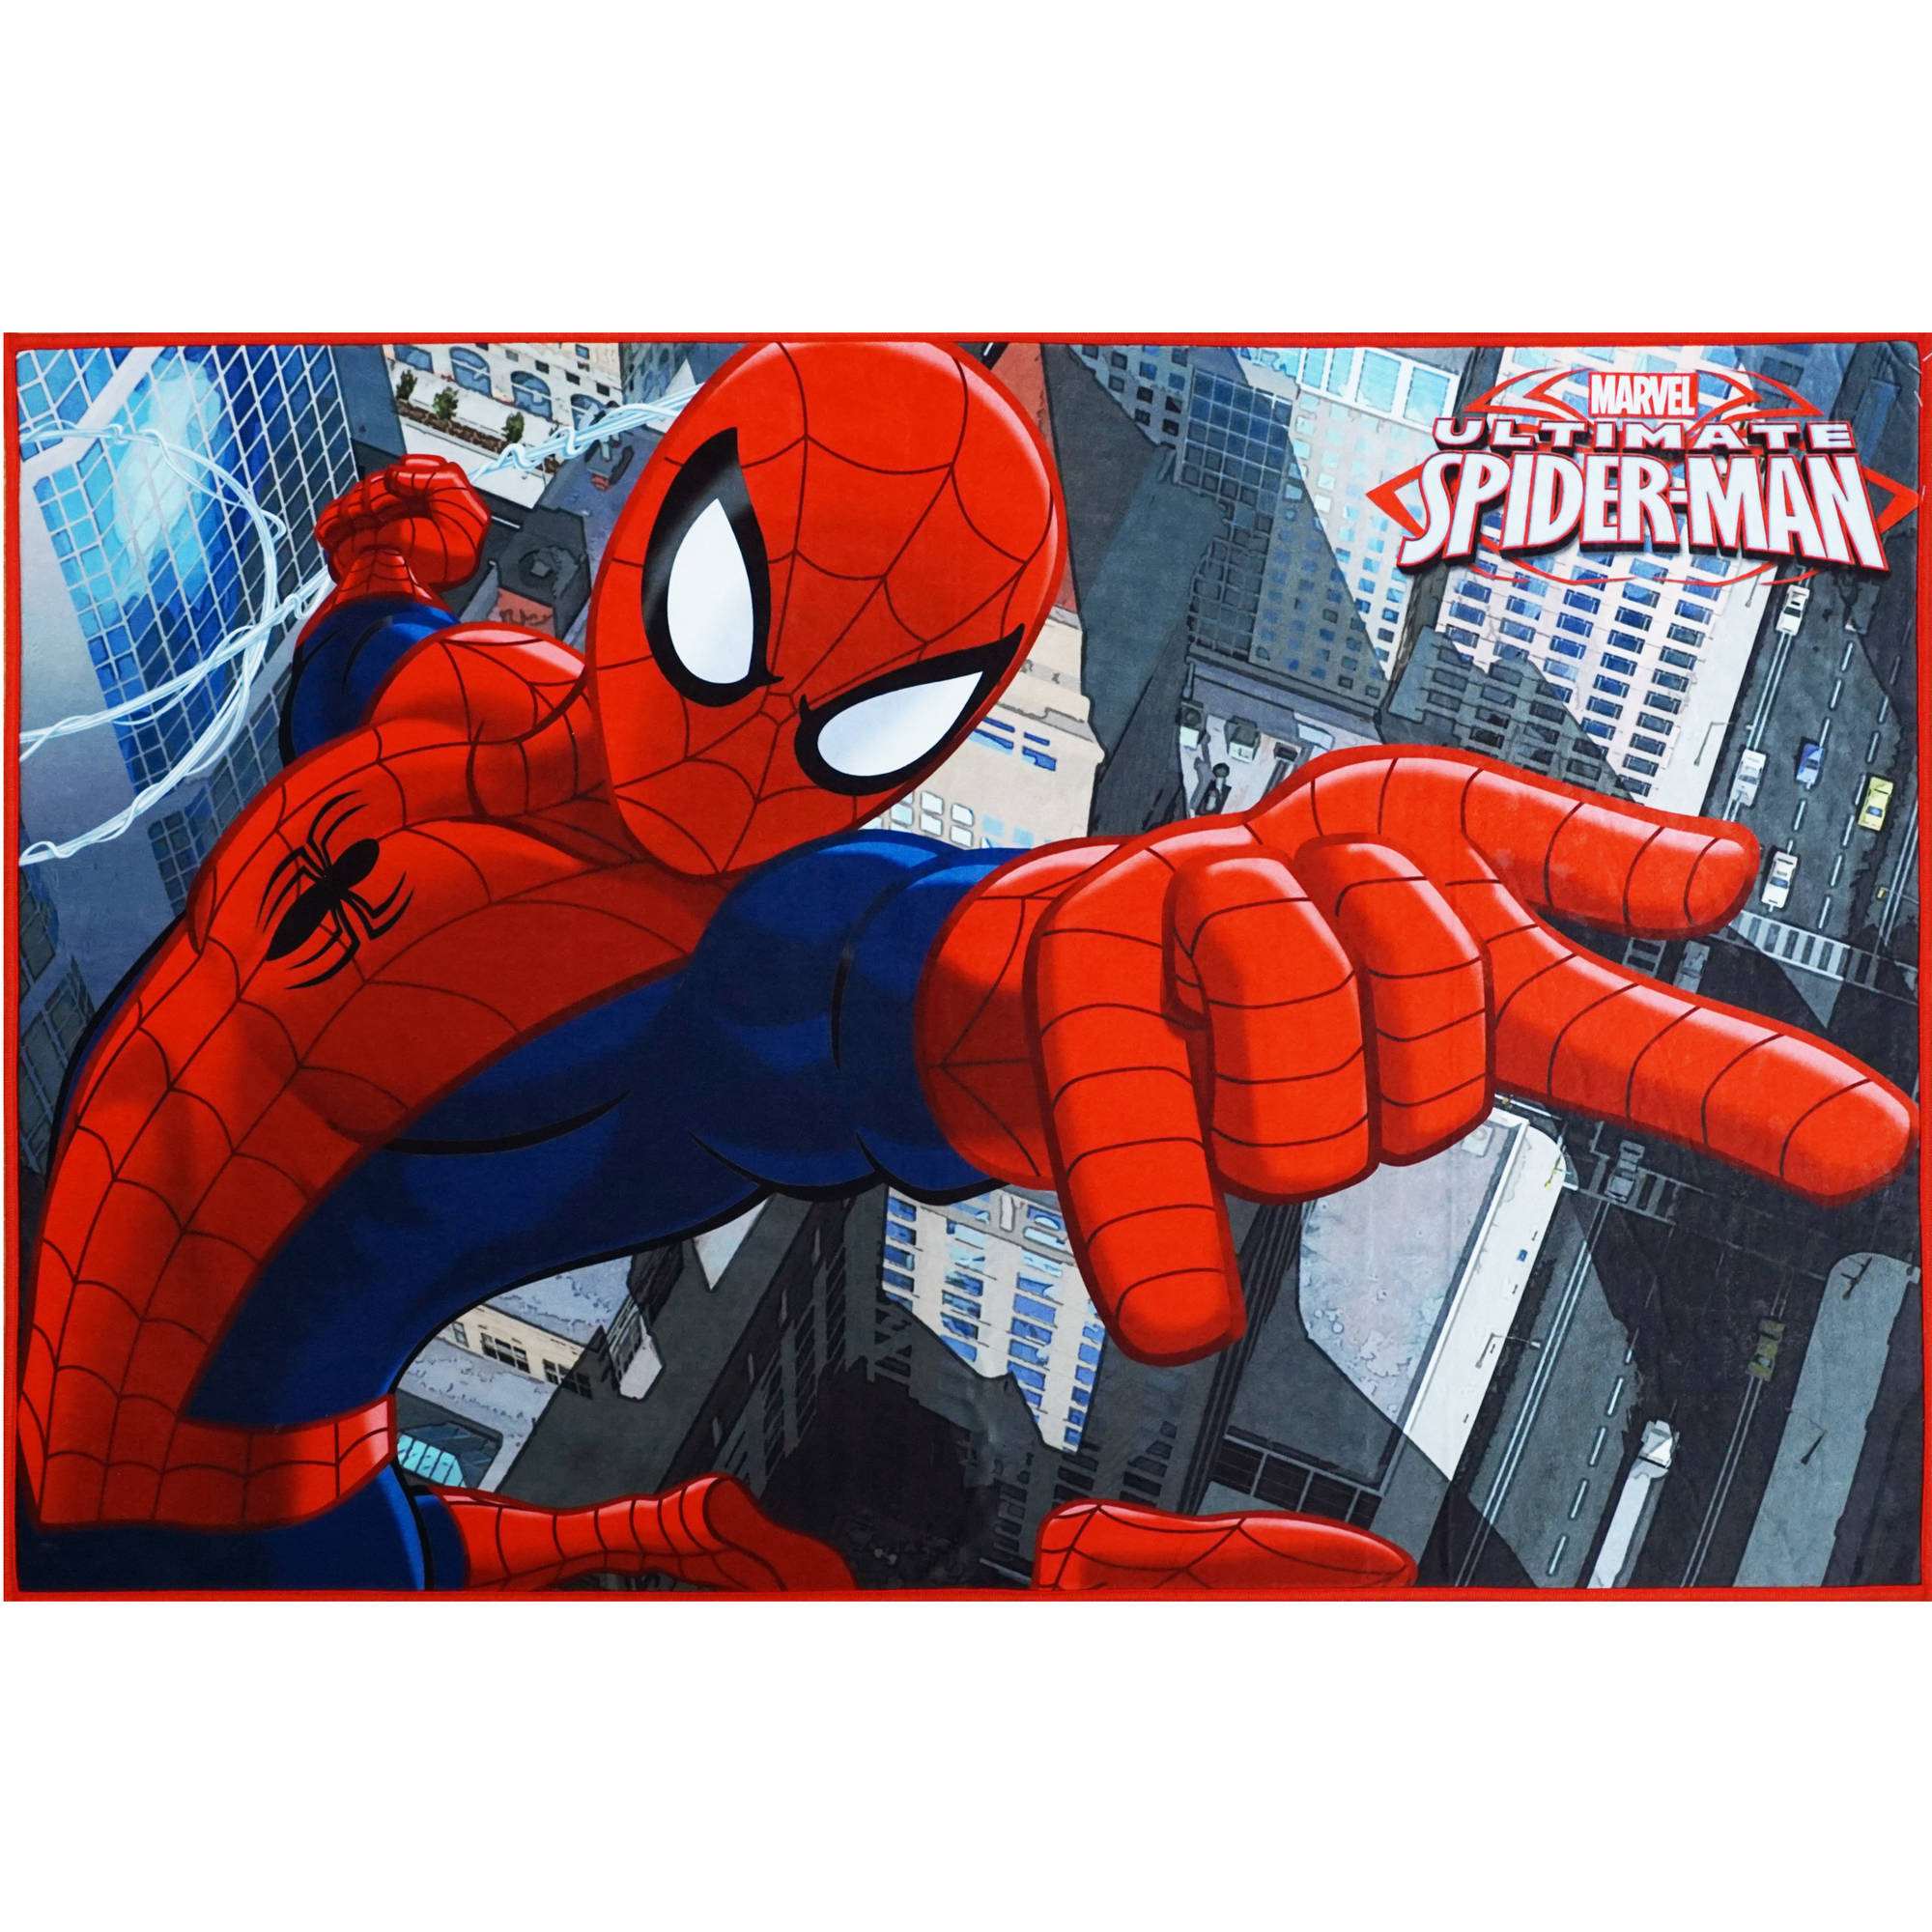 "Marvel Spiderman Heat Transfer Rug, Multi-Color, 3'10"" x 2'6"""